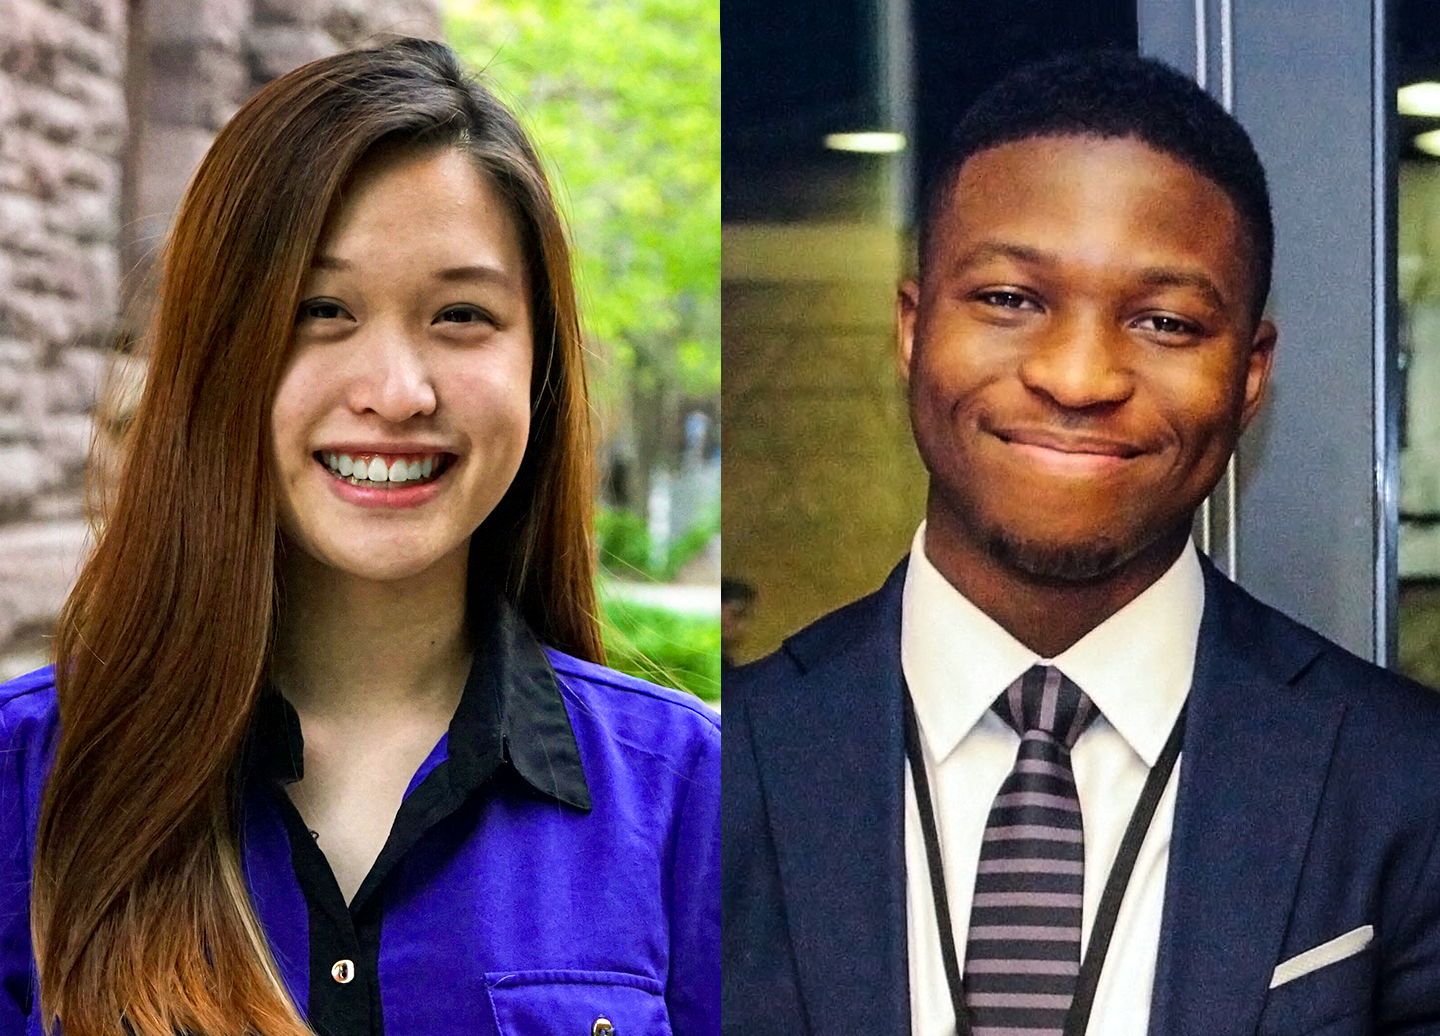 Combining perspectives from different worlds, Judson Asiruwa and Jamie Lee built an award-winning food waste app